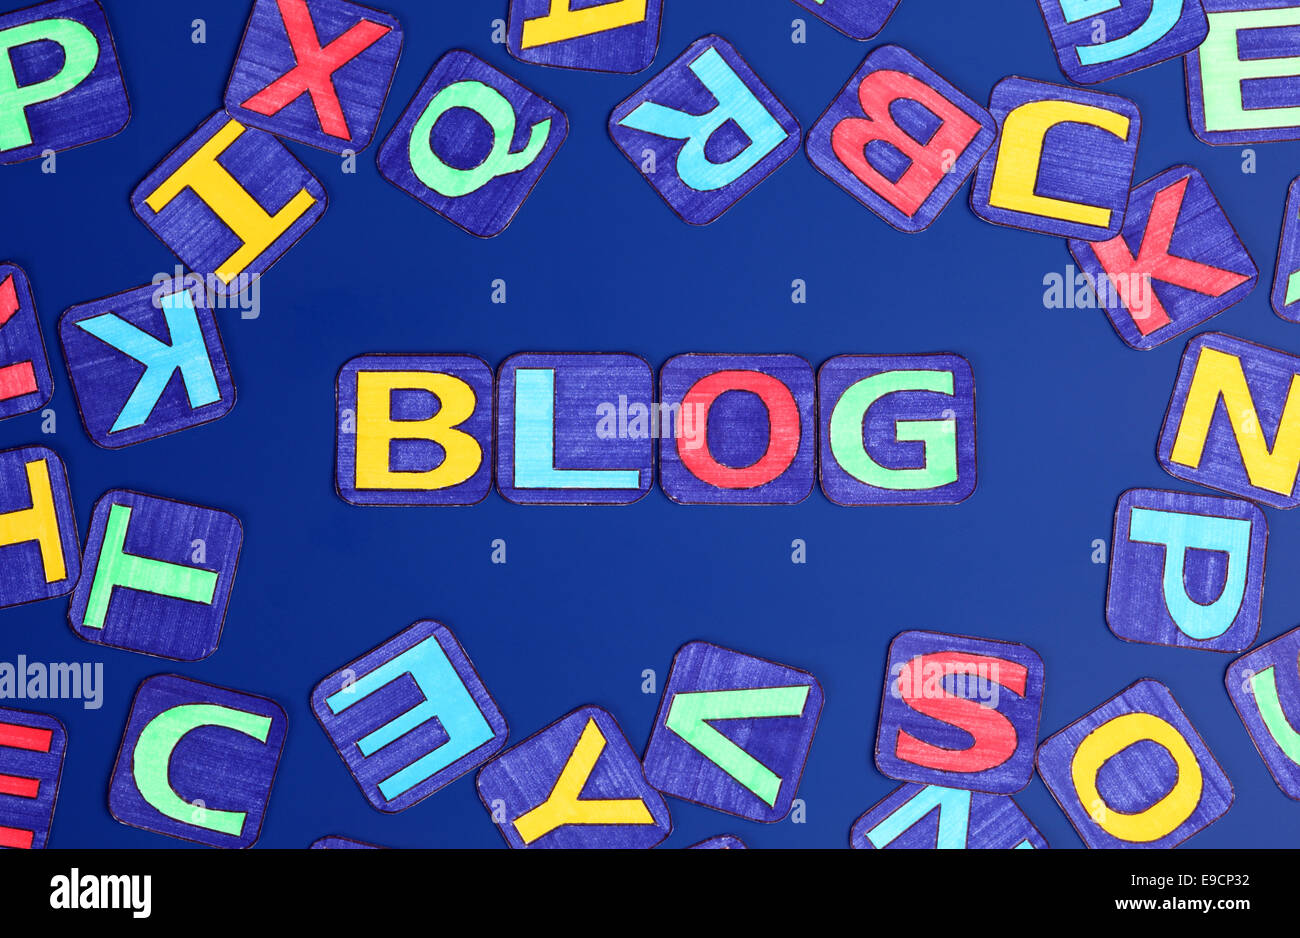 Word 'Blog' spell out on blue background with letters. Letters drawn by me. - Stock Image